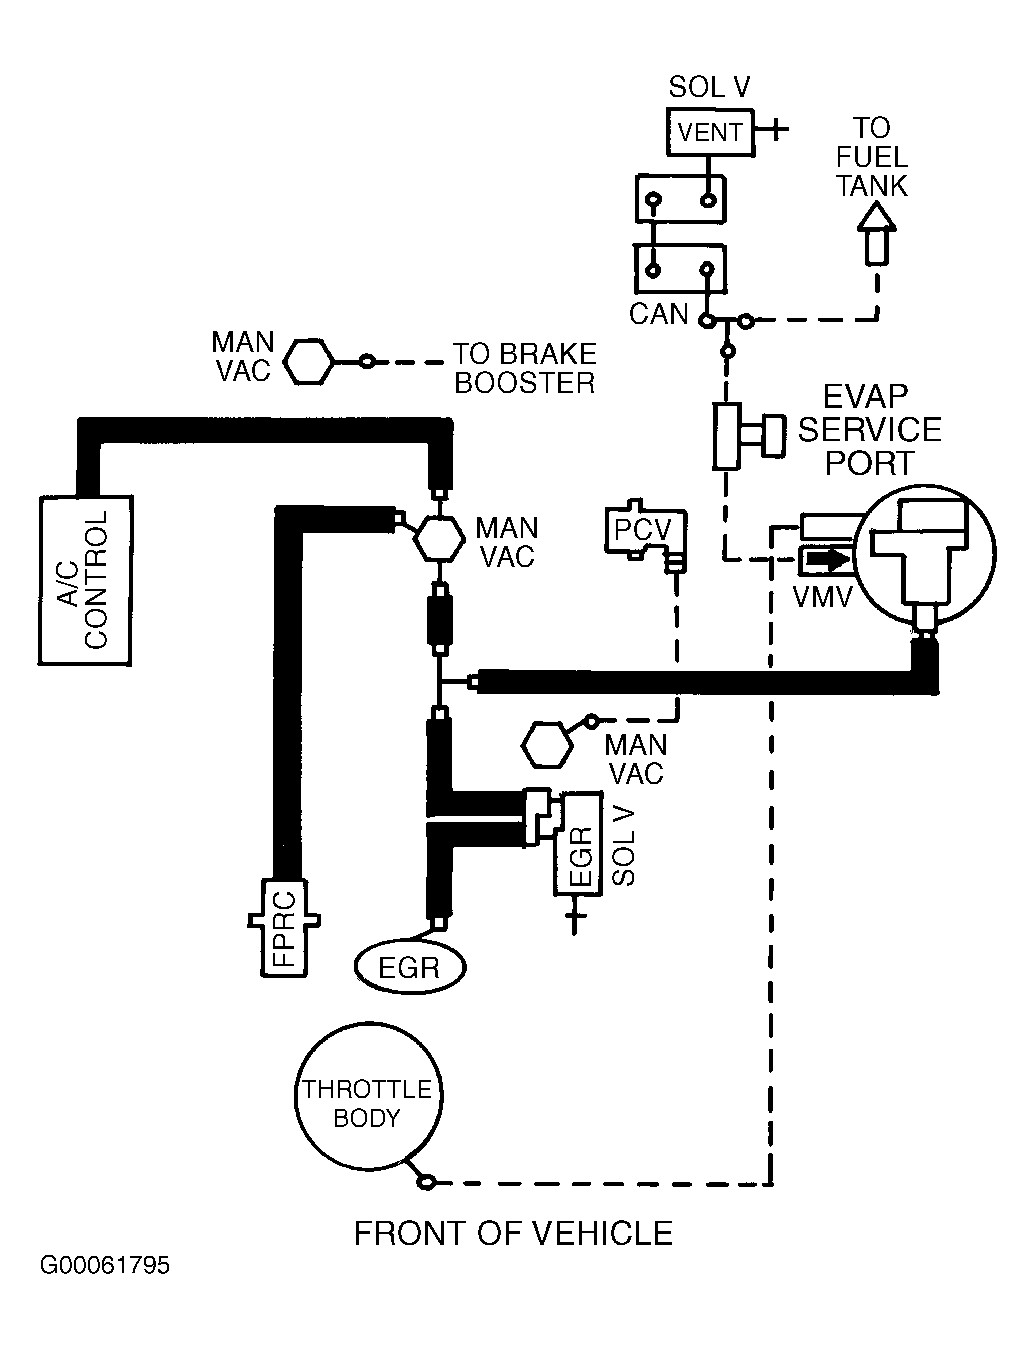 2003 pontiac aztek engine diagram html